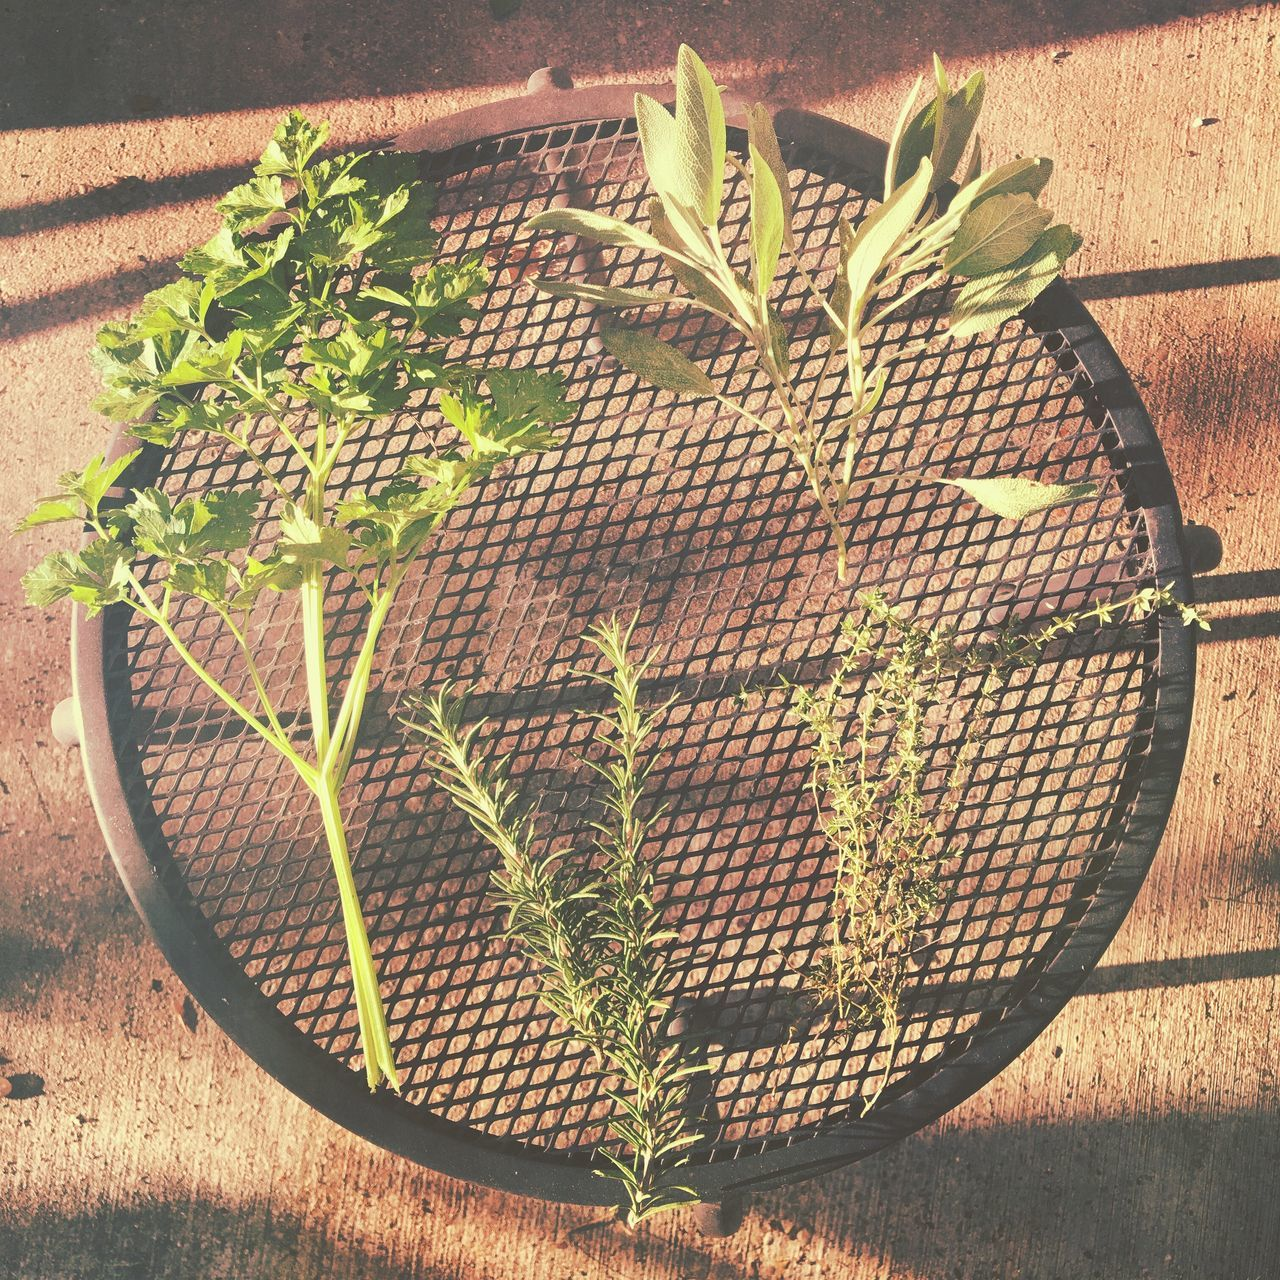 growth, plant, potted plant, no people, high angle view, leaf, green color, outdoors, day, basket, table, nature, sunlight, freshness, close-up